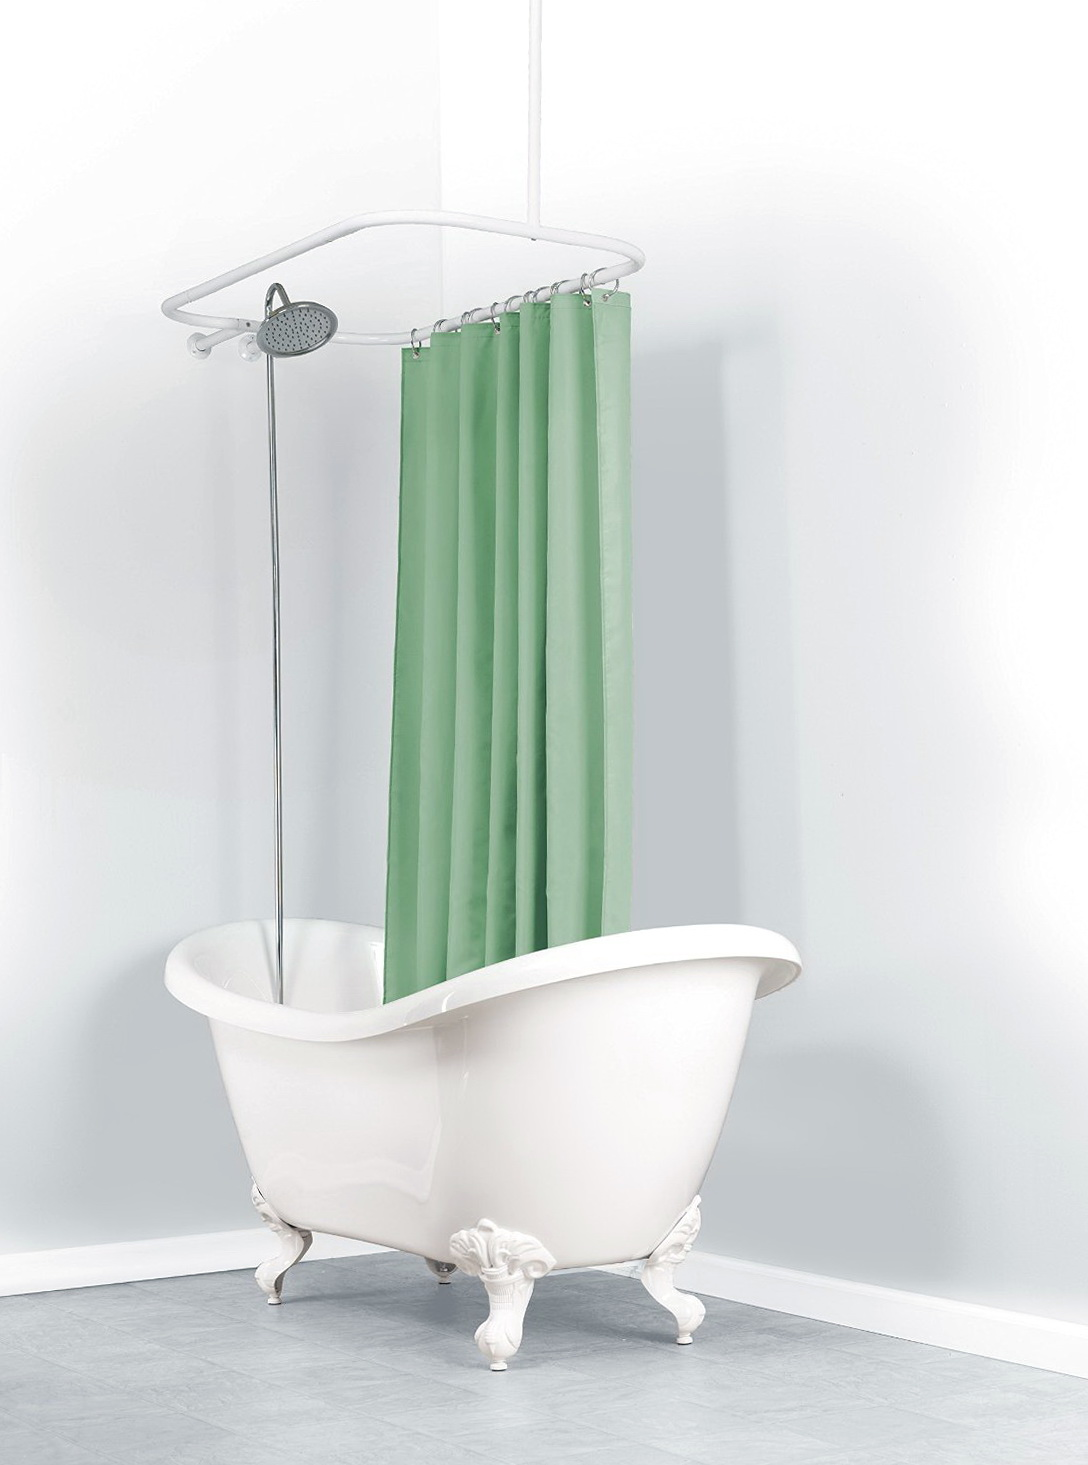 shower curtain rod for clawfoot tub rods straight 2018 and outstanding shaped collection ideas shower curtain rod for clawfoot tub canada home design ideas 2167